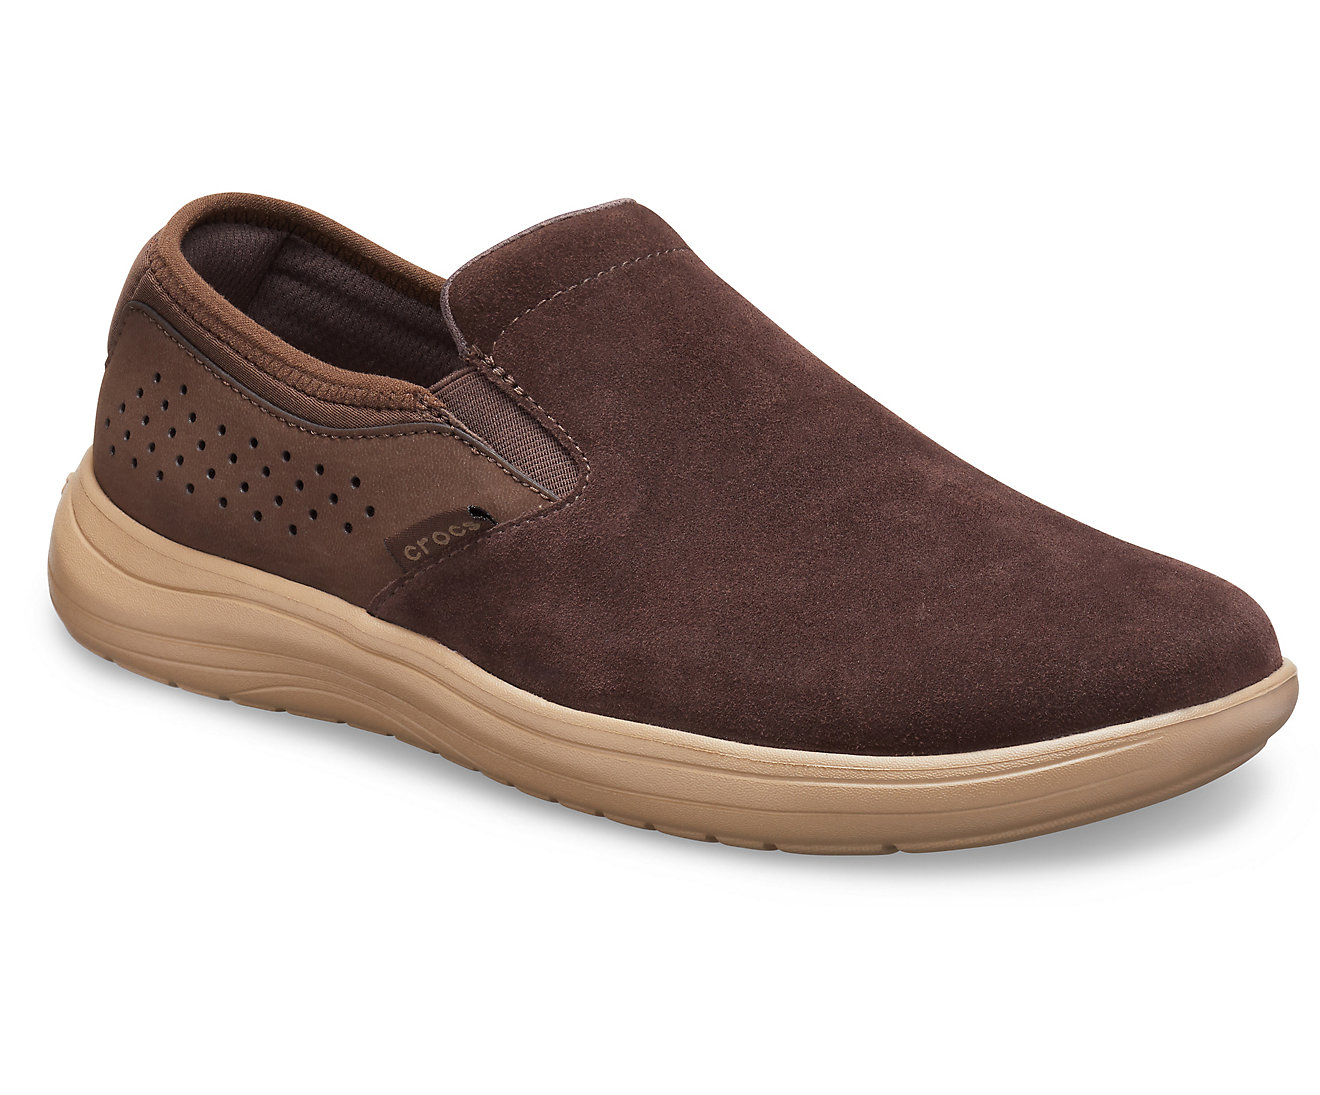 Crocs Men's Reviva Suede Slip-On Shoes